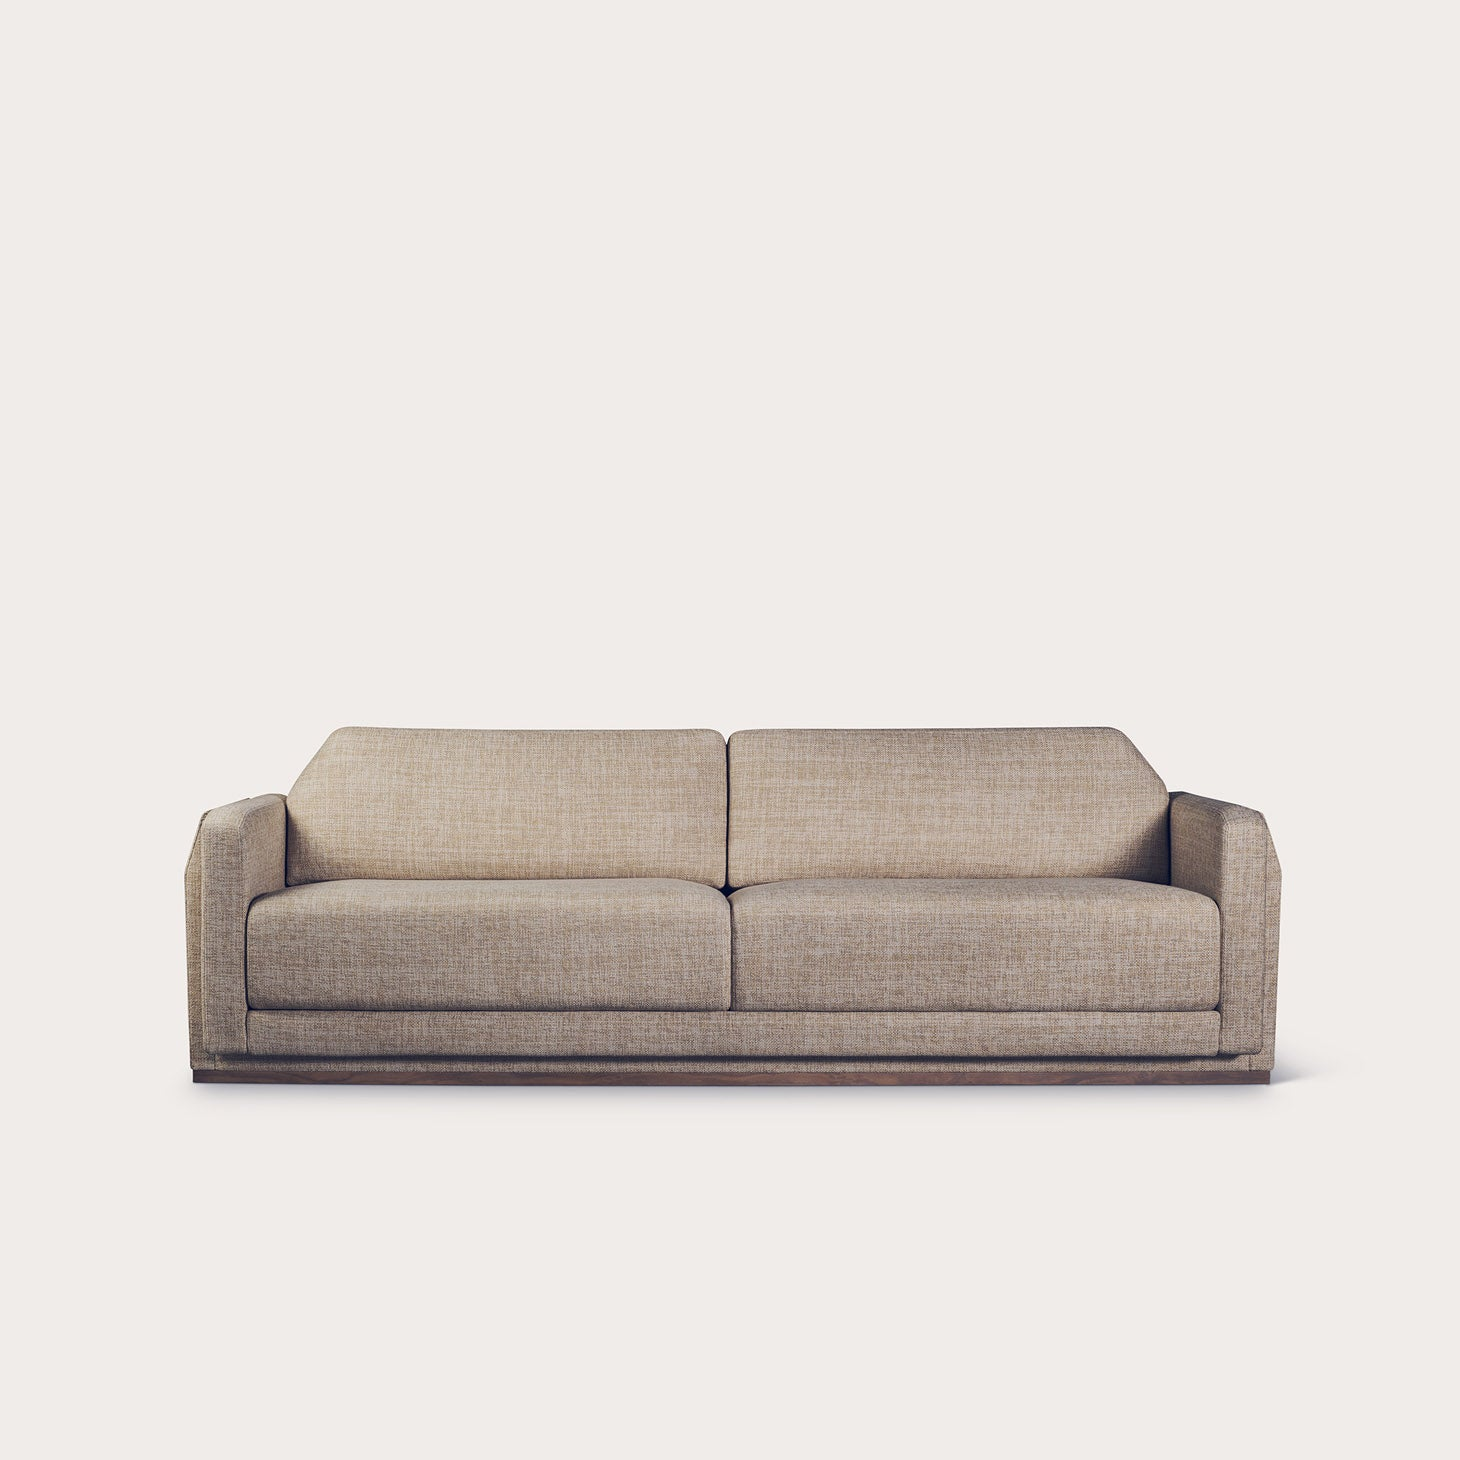 BORGA Sofa Seating Bruno Moinard Designer Furniture Sku: 773-240-10006